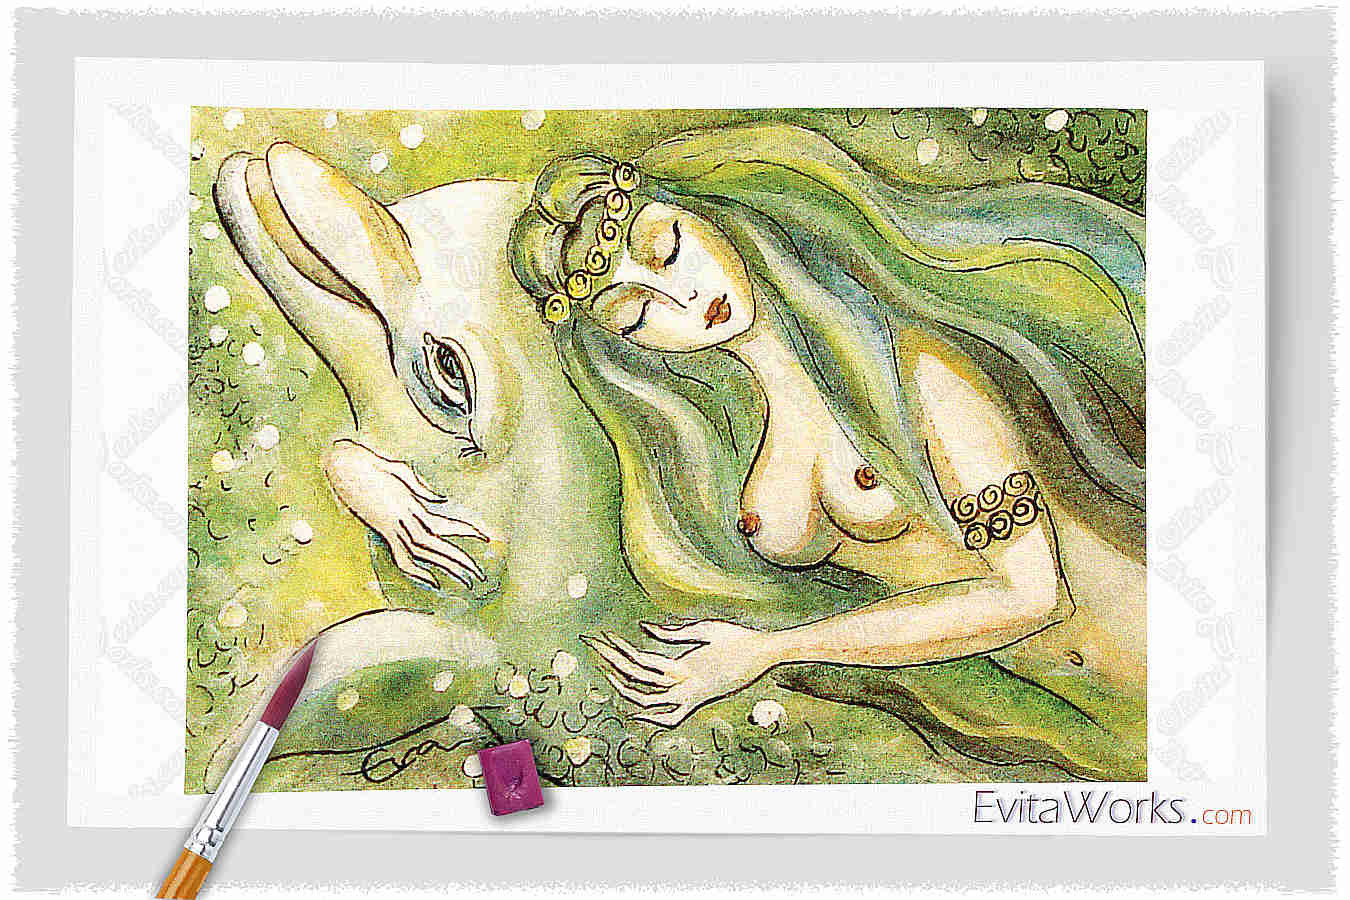 Mermaid 17 ~ EvitaWorks